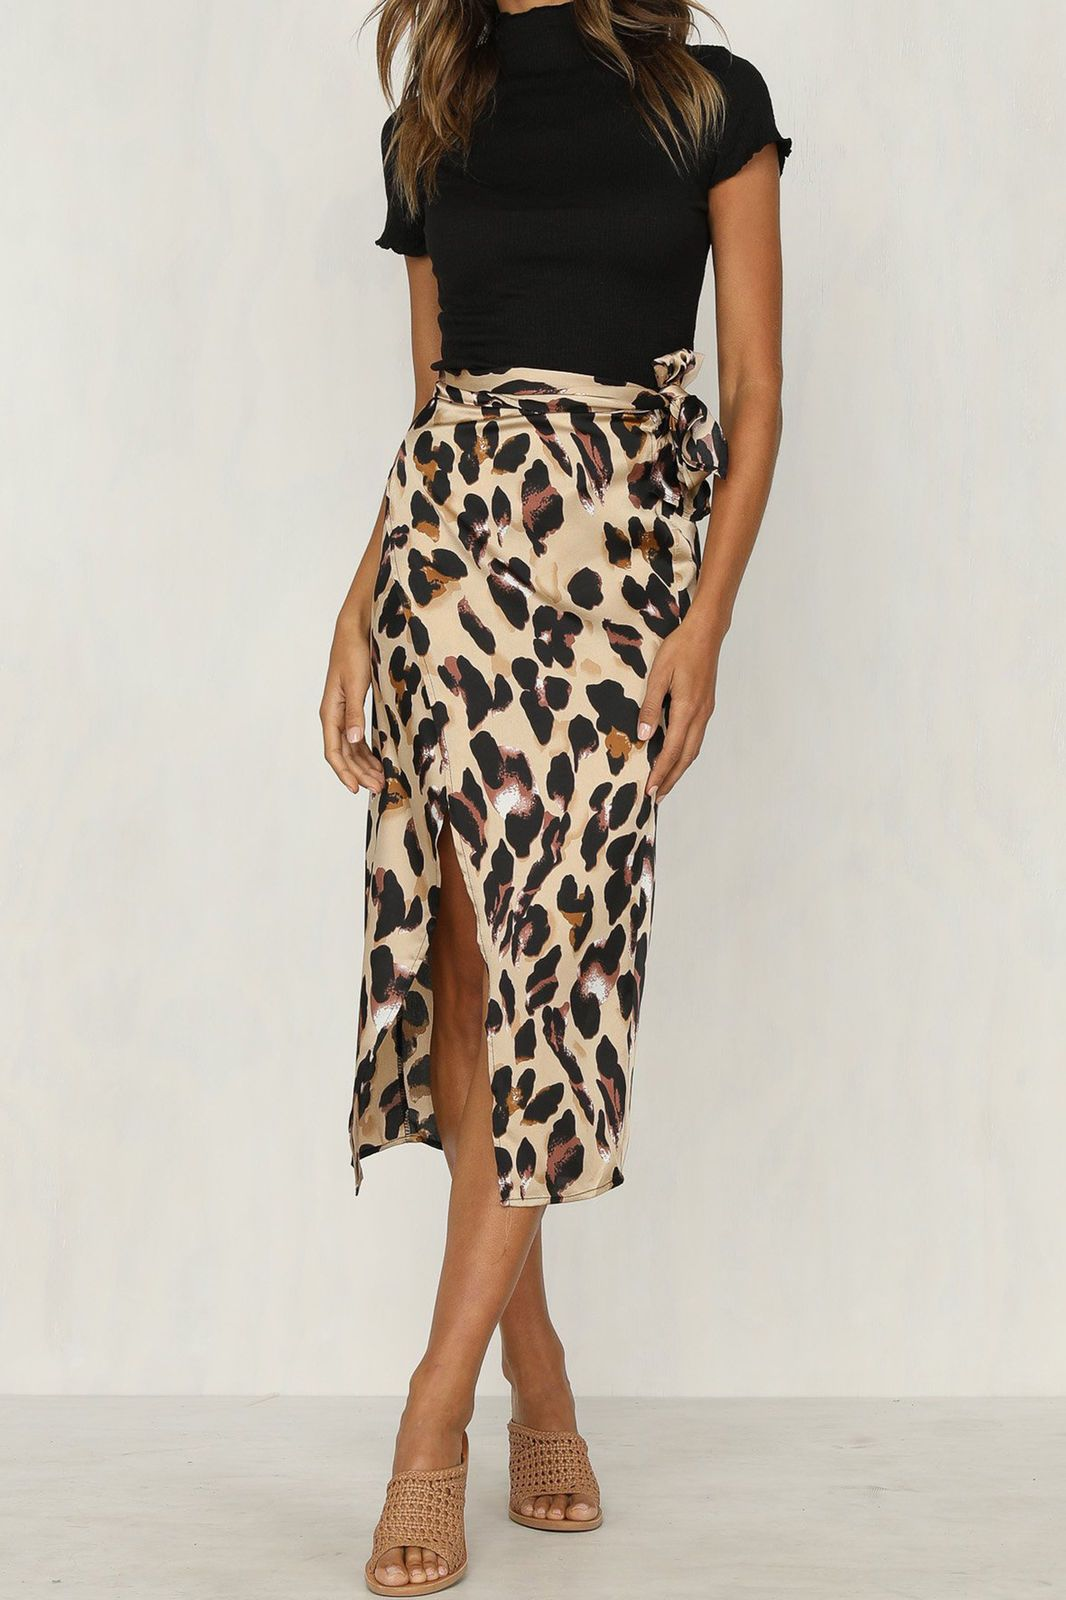 b2c63cdc44e6 Womens High Wasited Leopard Print Stretch Ladies Midi Pencil Skirt Party  Dress Yellow S  Ad